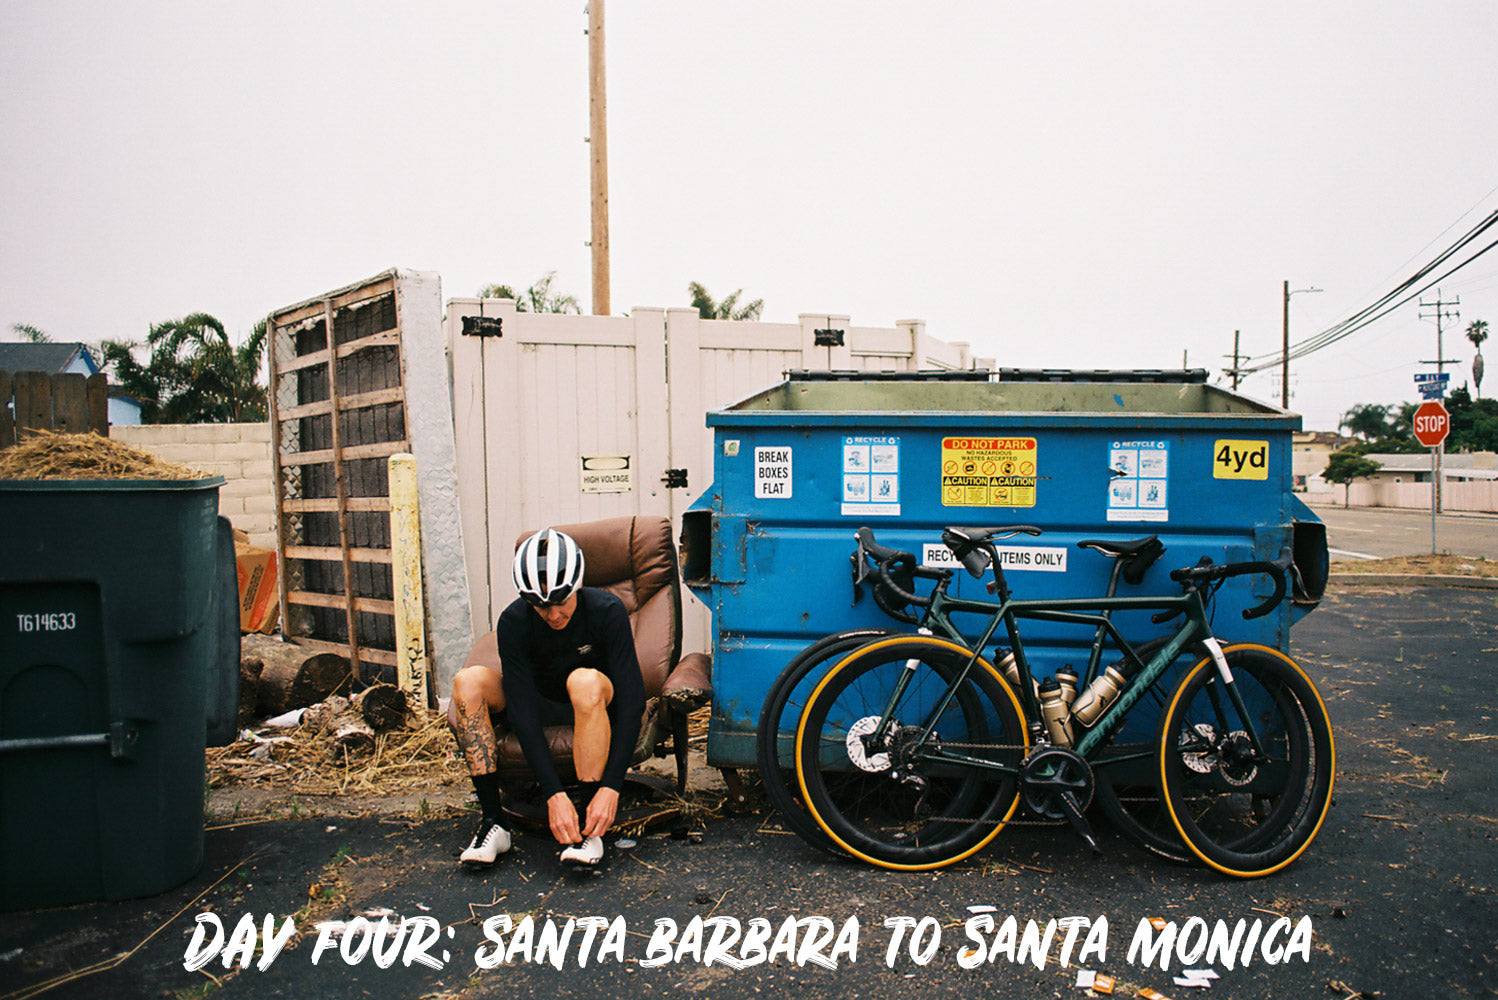 Day Four: Santa Barbara to Santa Monica